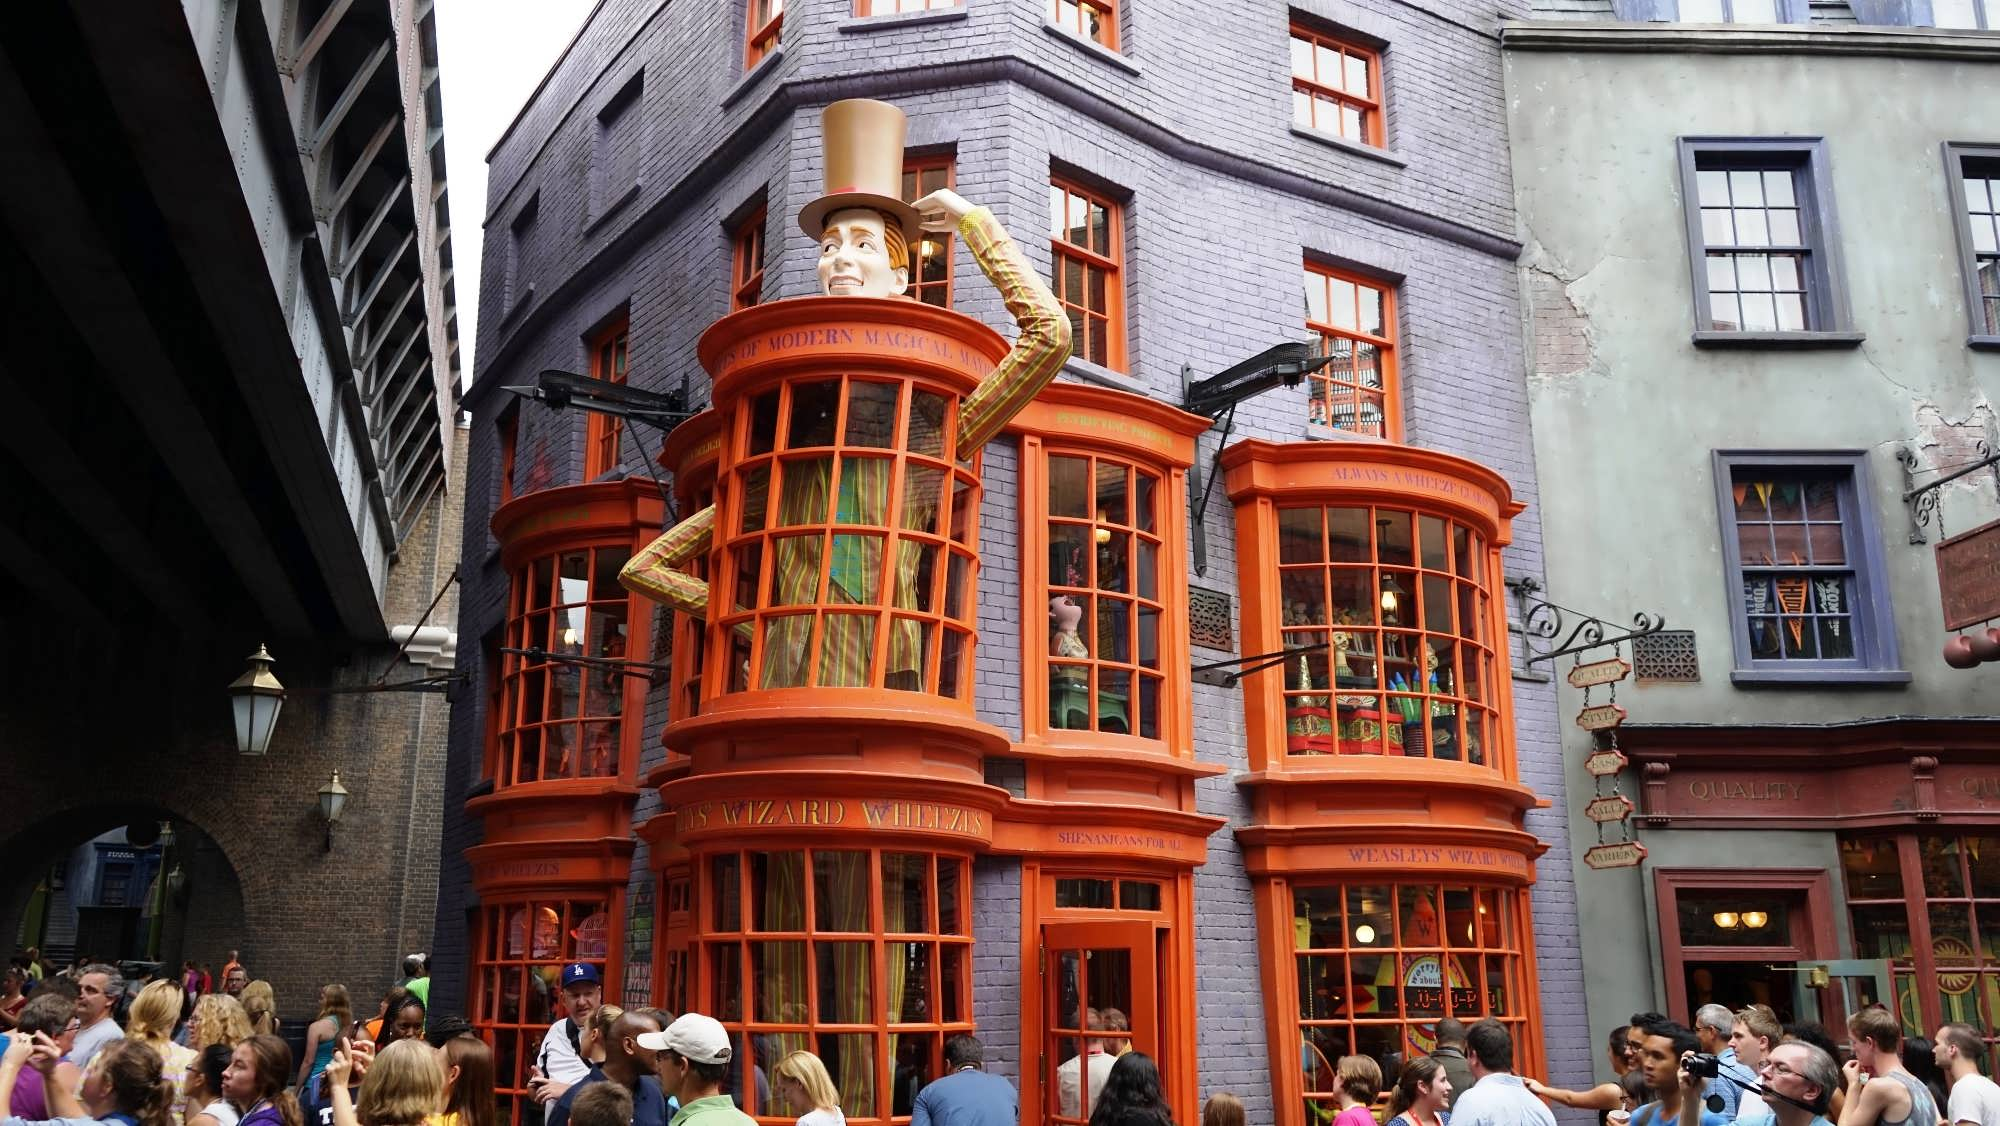 Weasleys' Wizard Wheezes in The Wizarding World of Harry Potter - Diagon Alley at Universal Studios Florida